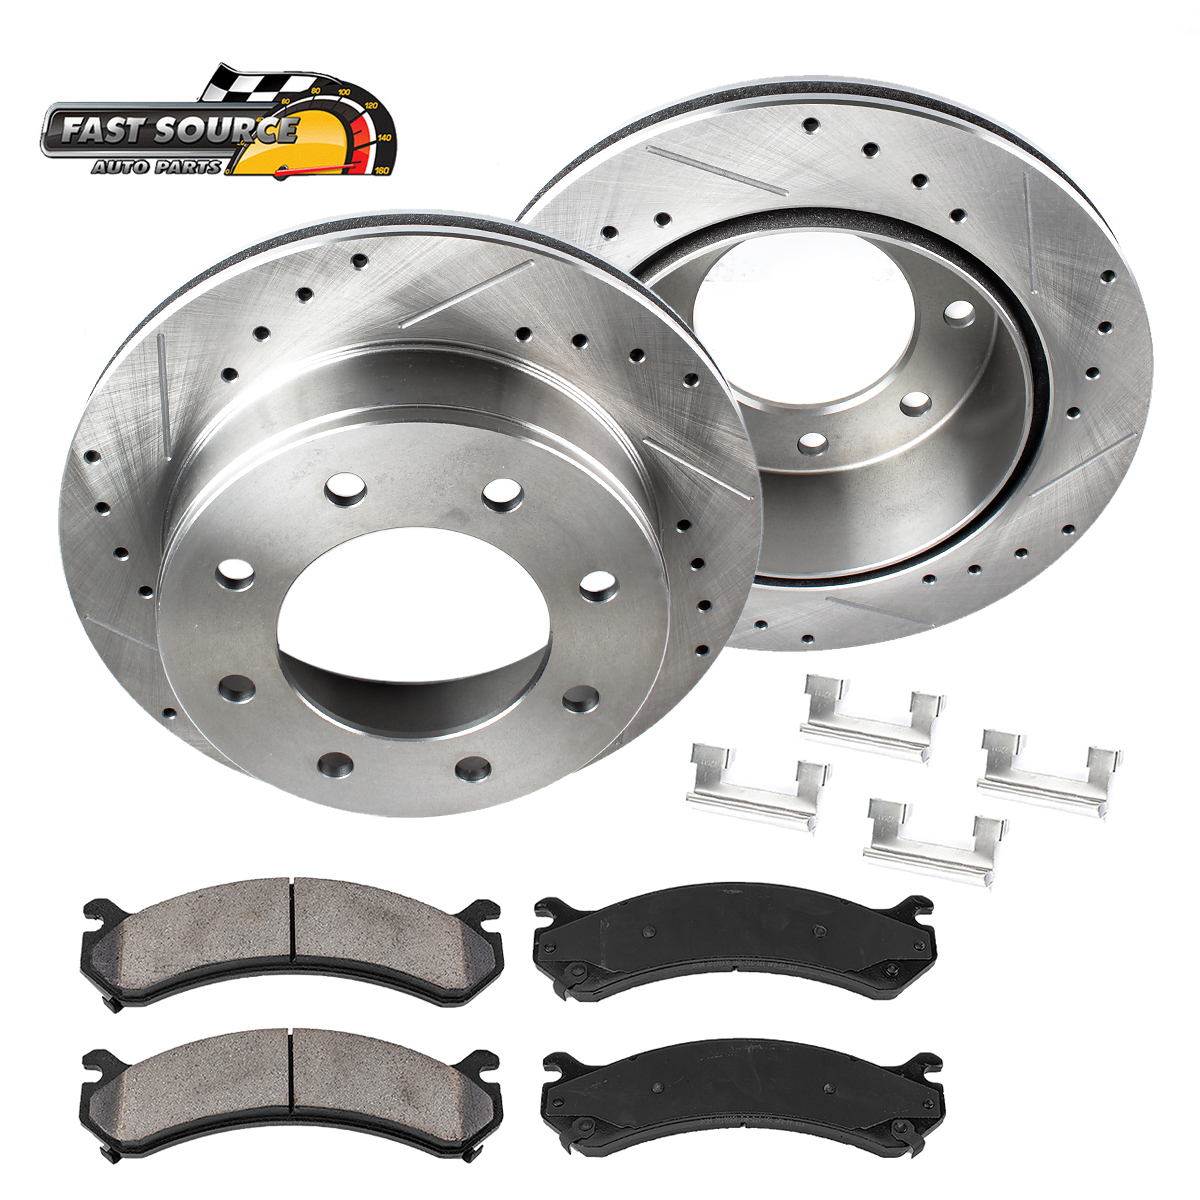 REAR Drill And Slot BRAKE Rotors For 2WD 4WD 1500 2500 3500 8Lug